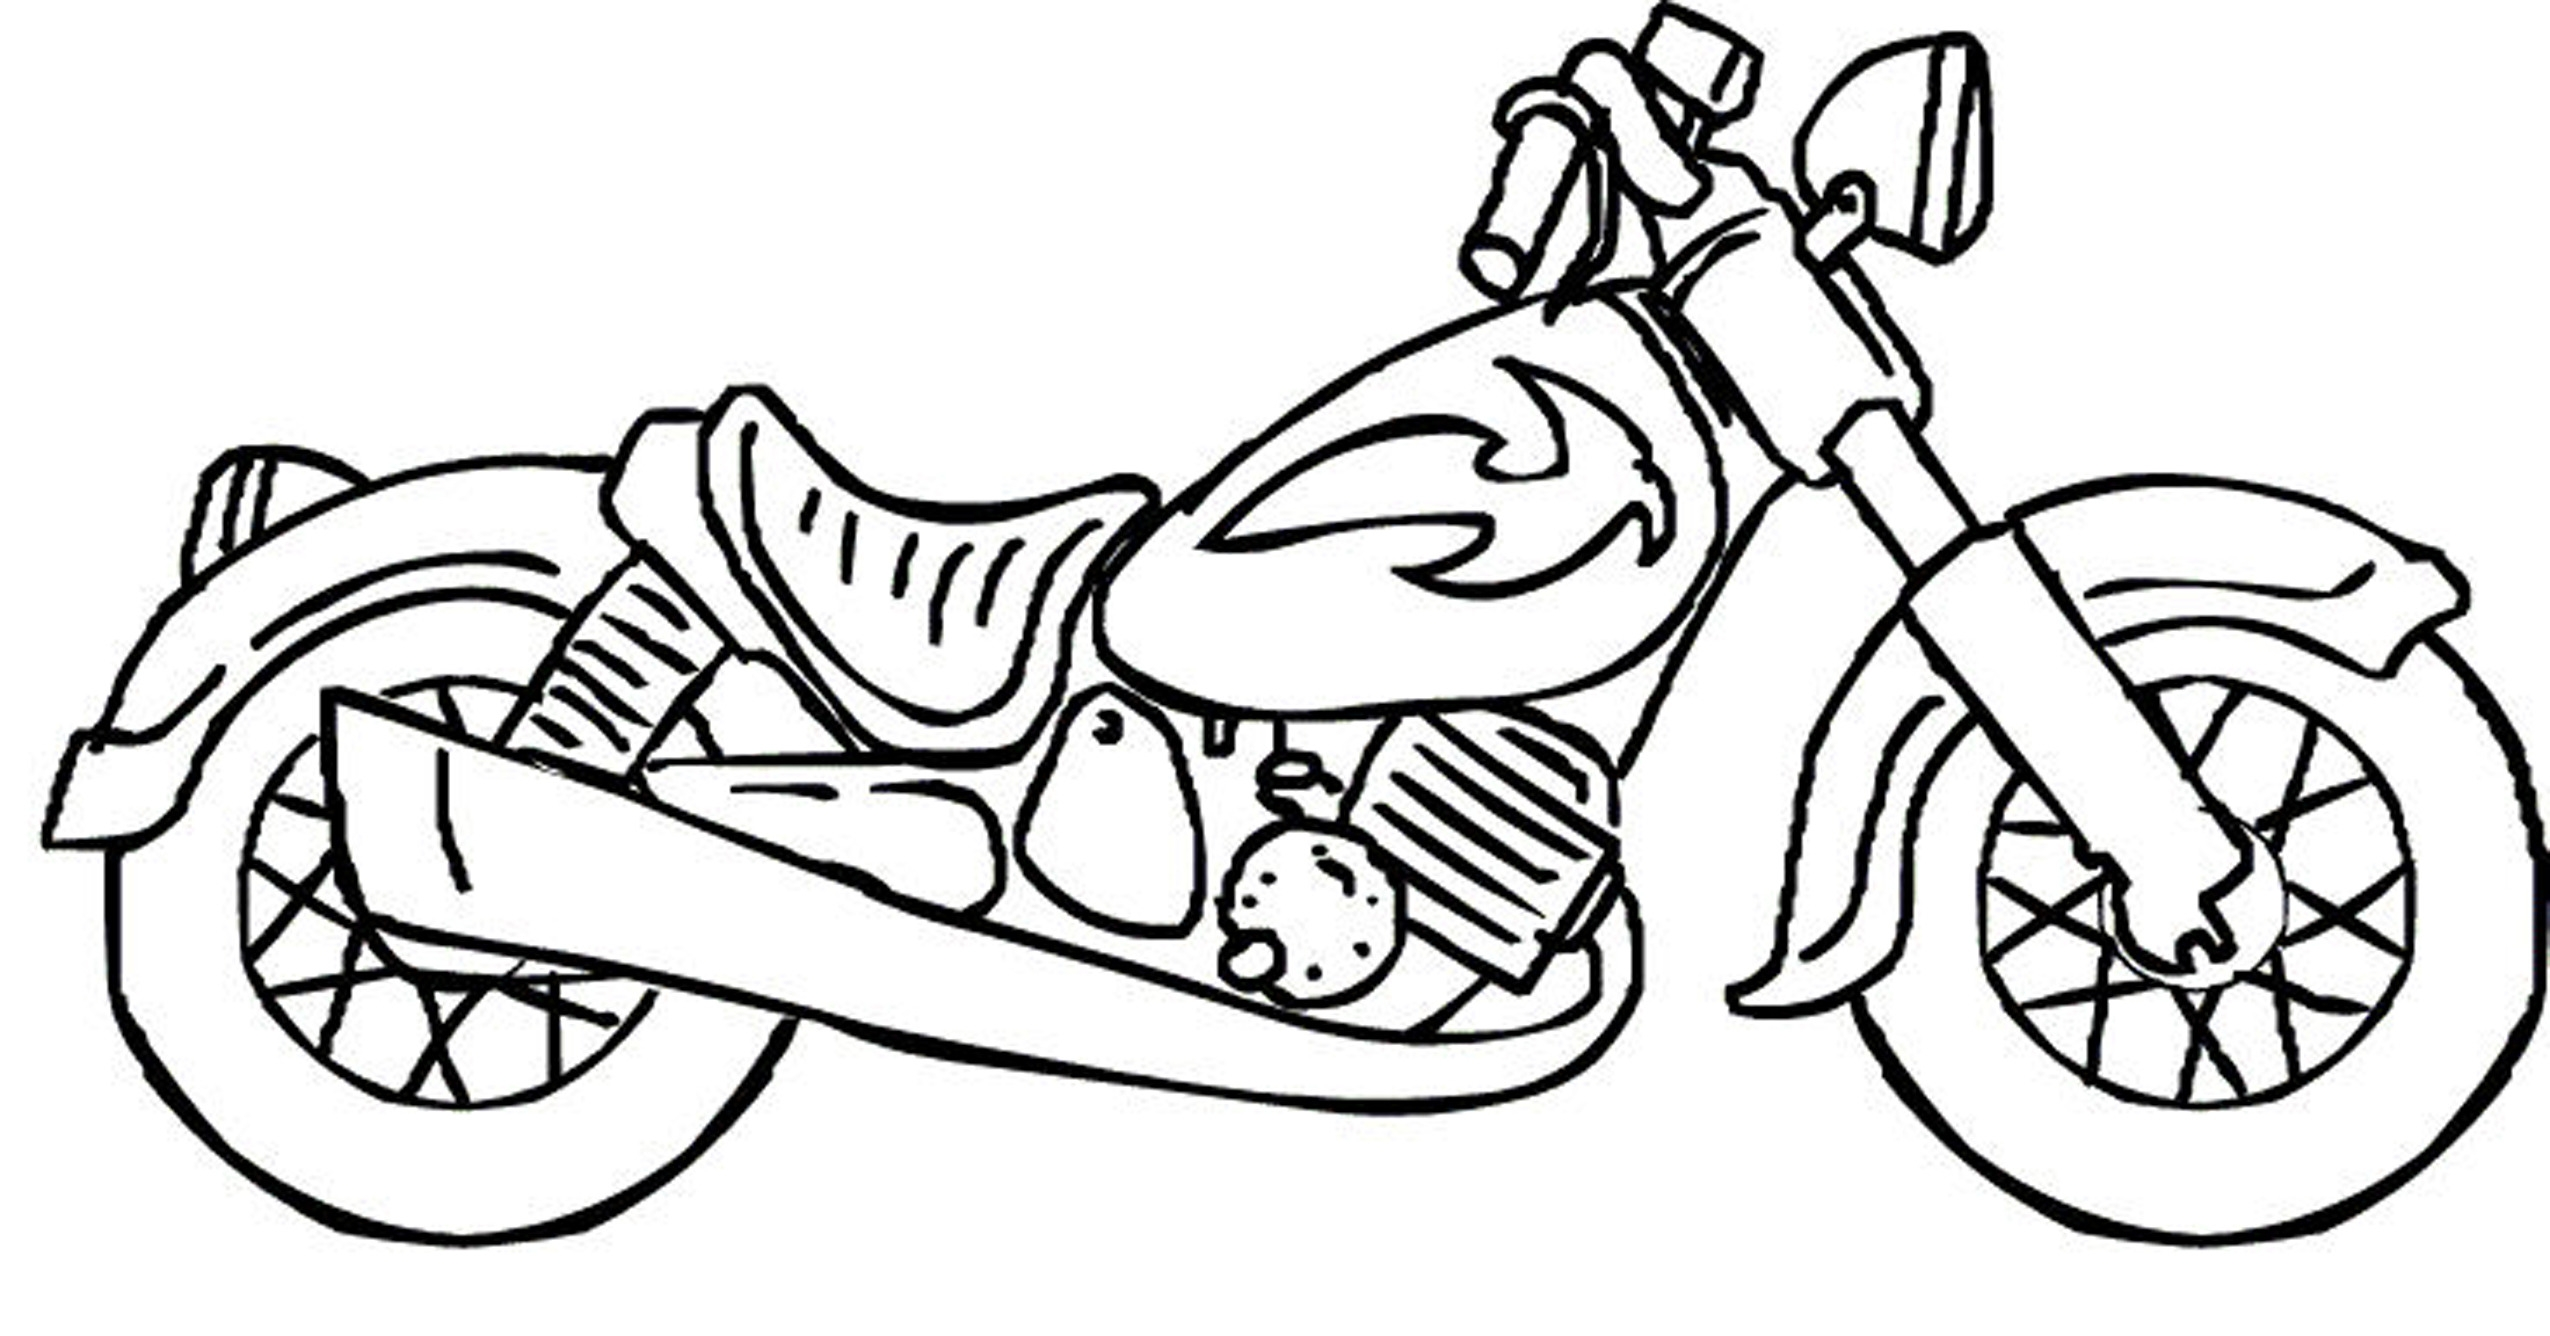 cars 66 cup coloring pages - photo#10